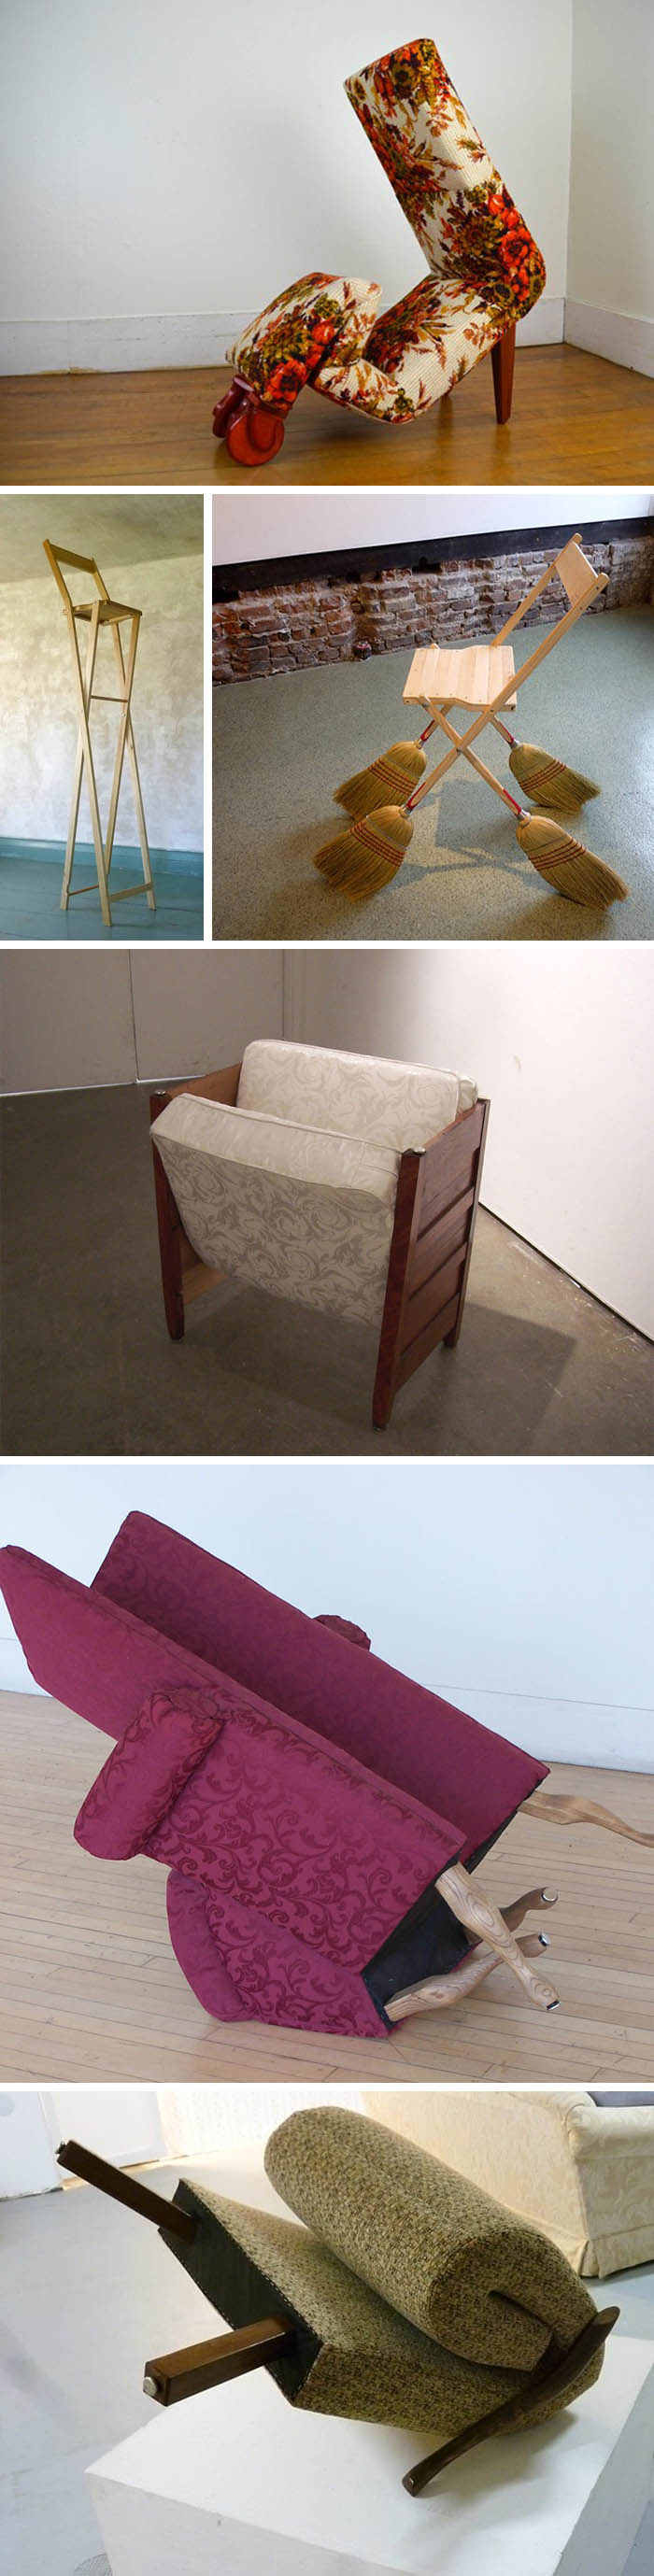 Humorous sculptures made from furniture, animated sculpture, furniture with attitude and personality, Angelo Arnold